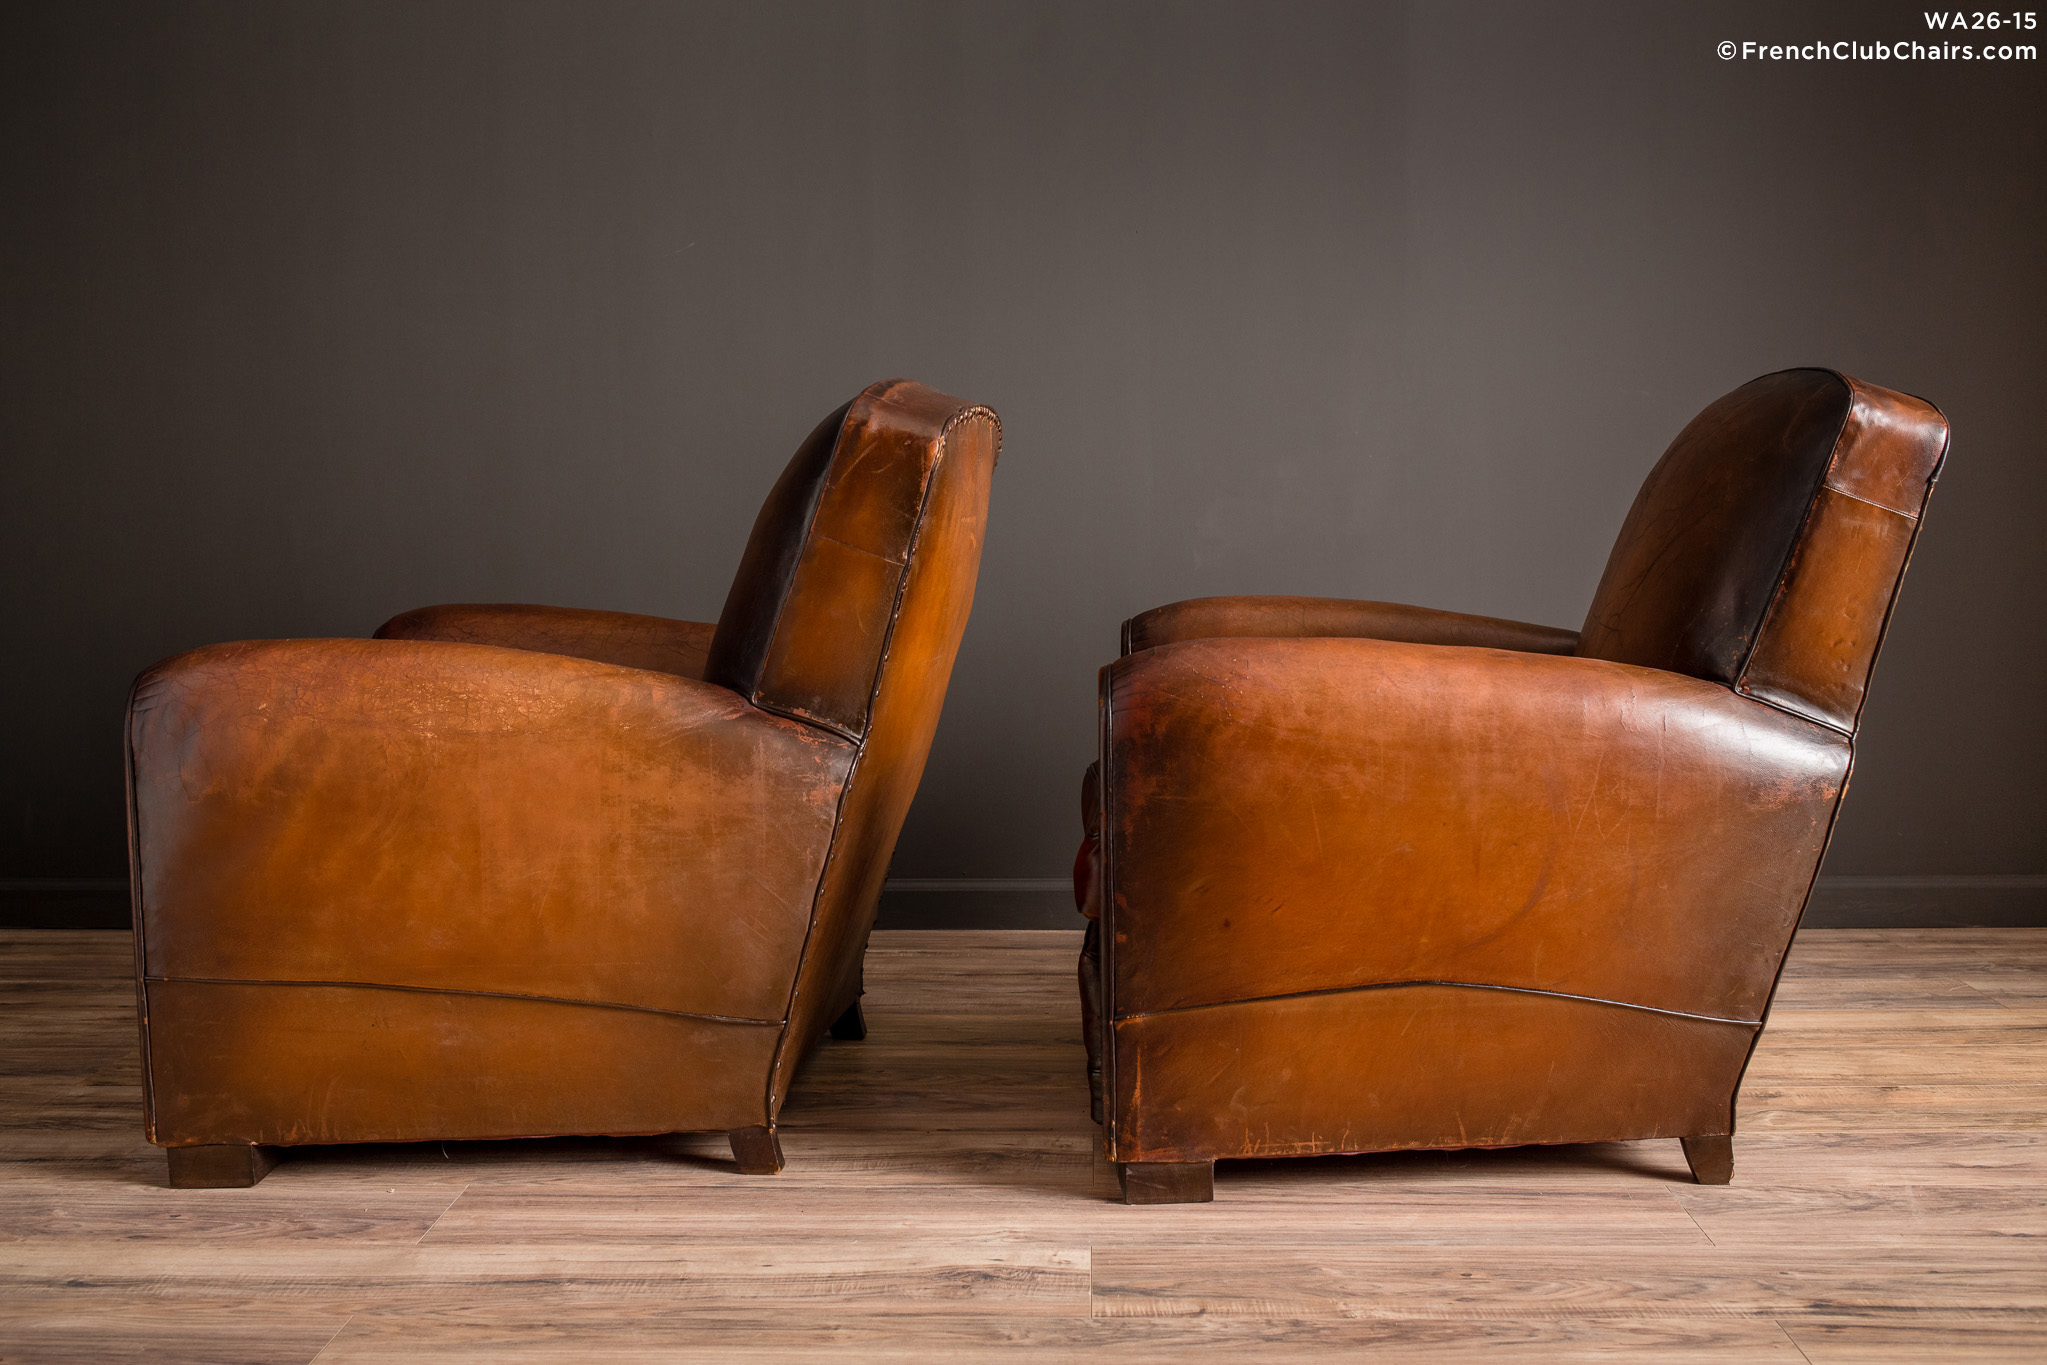 WA_26-15_Pontcharra_Library_Dark_Caramel_Pair_R_4LT-v01-williams-antiks-leather-french-club-chair-wa_fcccom